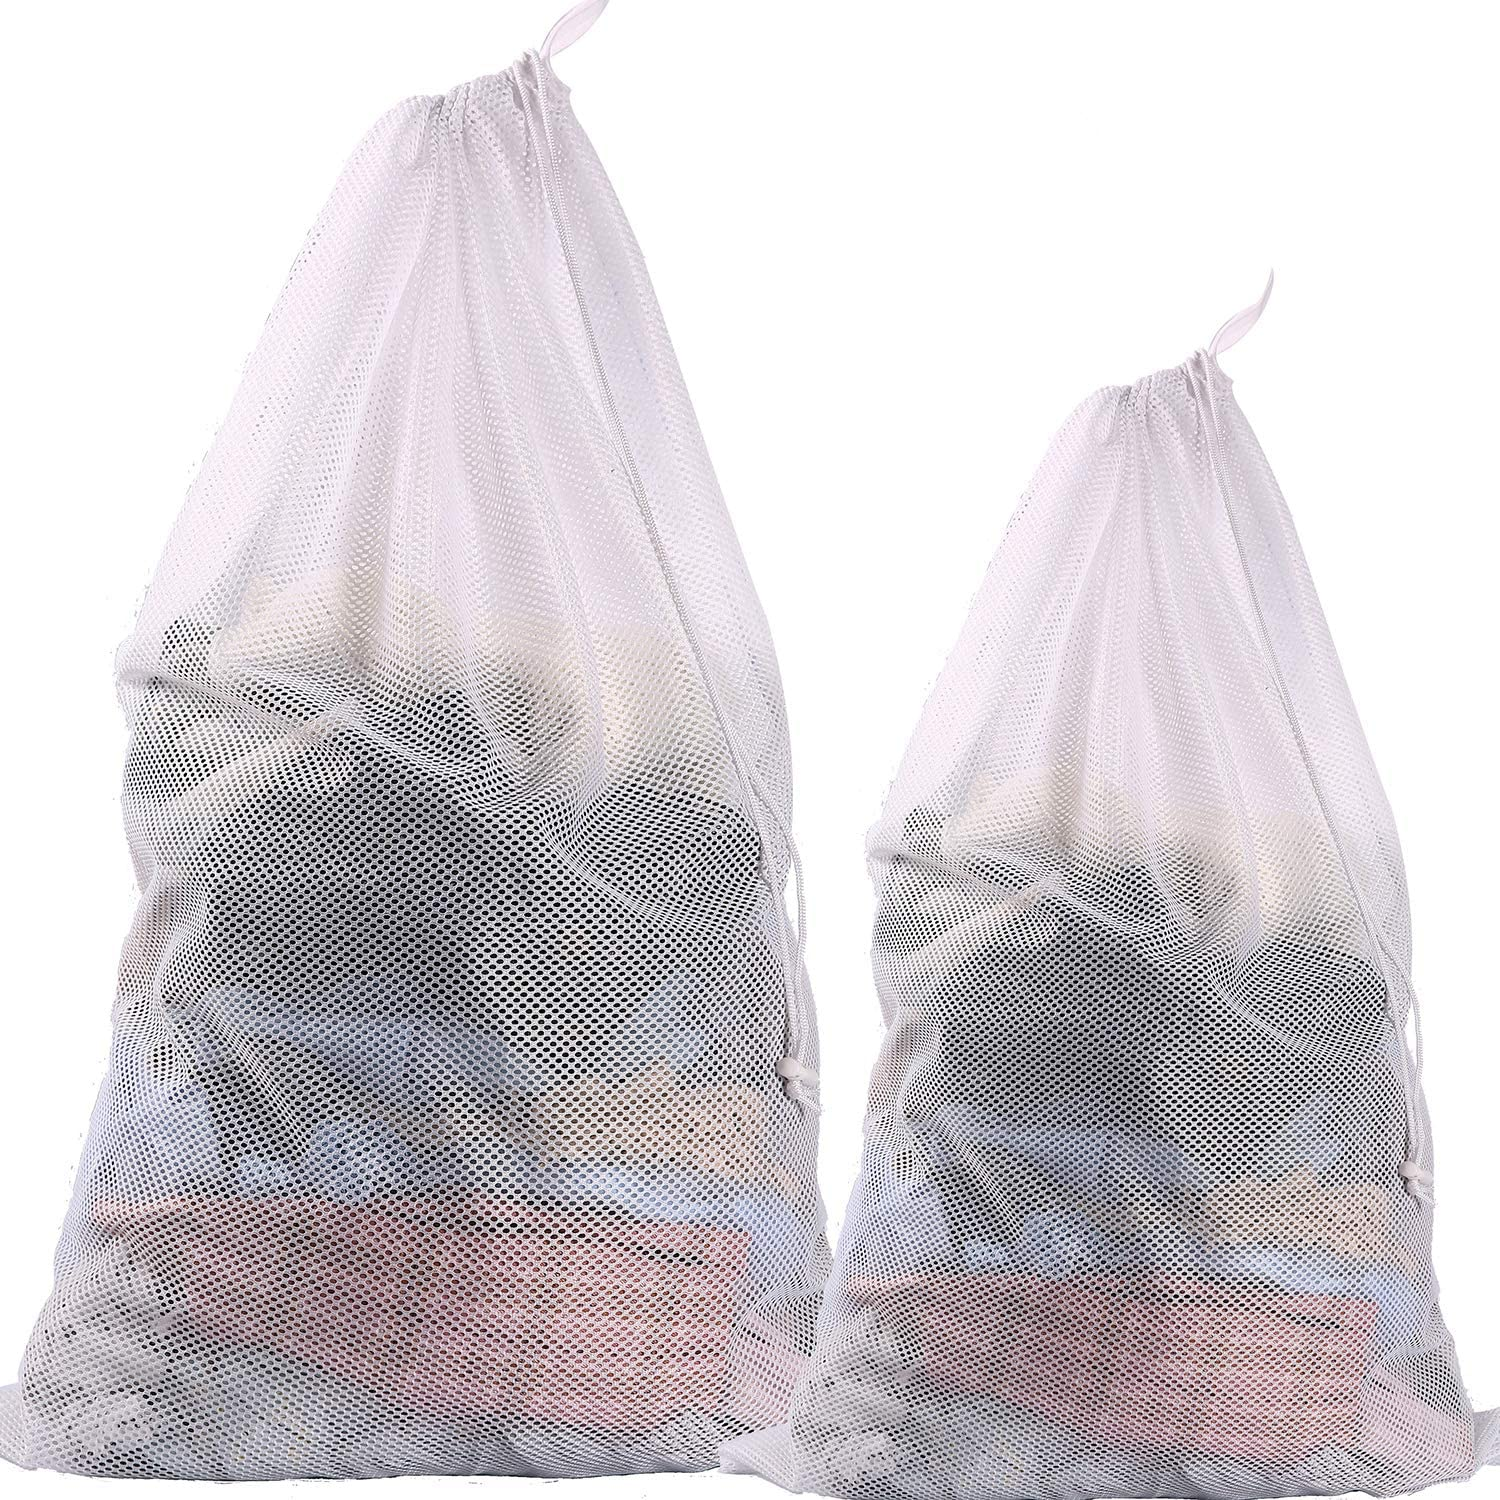 BAGAIL Set of 2 Sturdy Coarse Mesh Laundry Bag - 2 Extra Large&1 Large with Drawstring Closure for College, Dorm and Apartment Dwellers(2 Set Coarse Mesh)